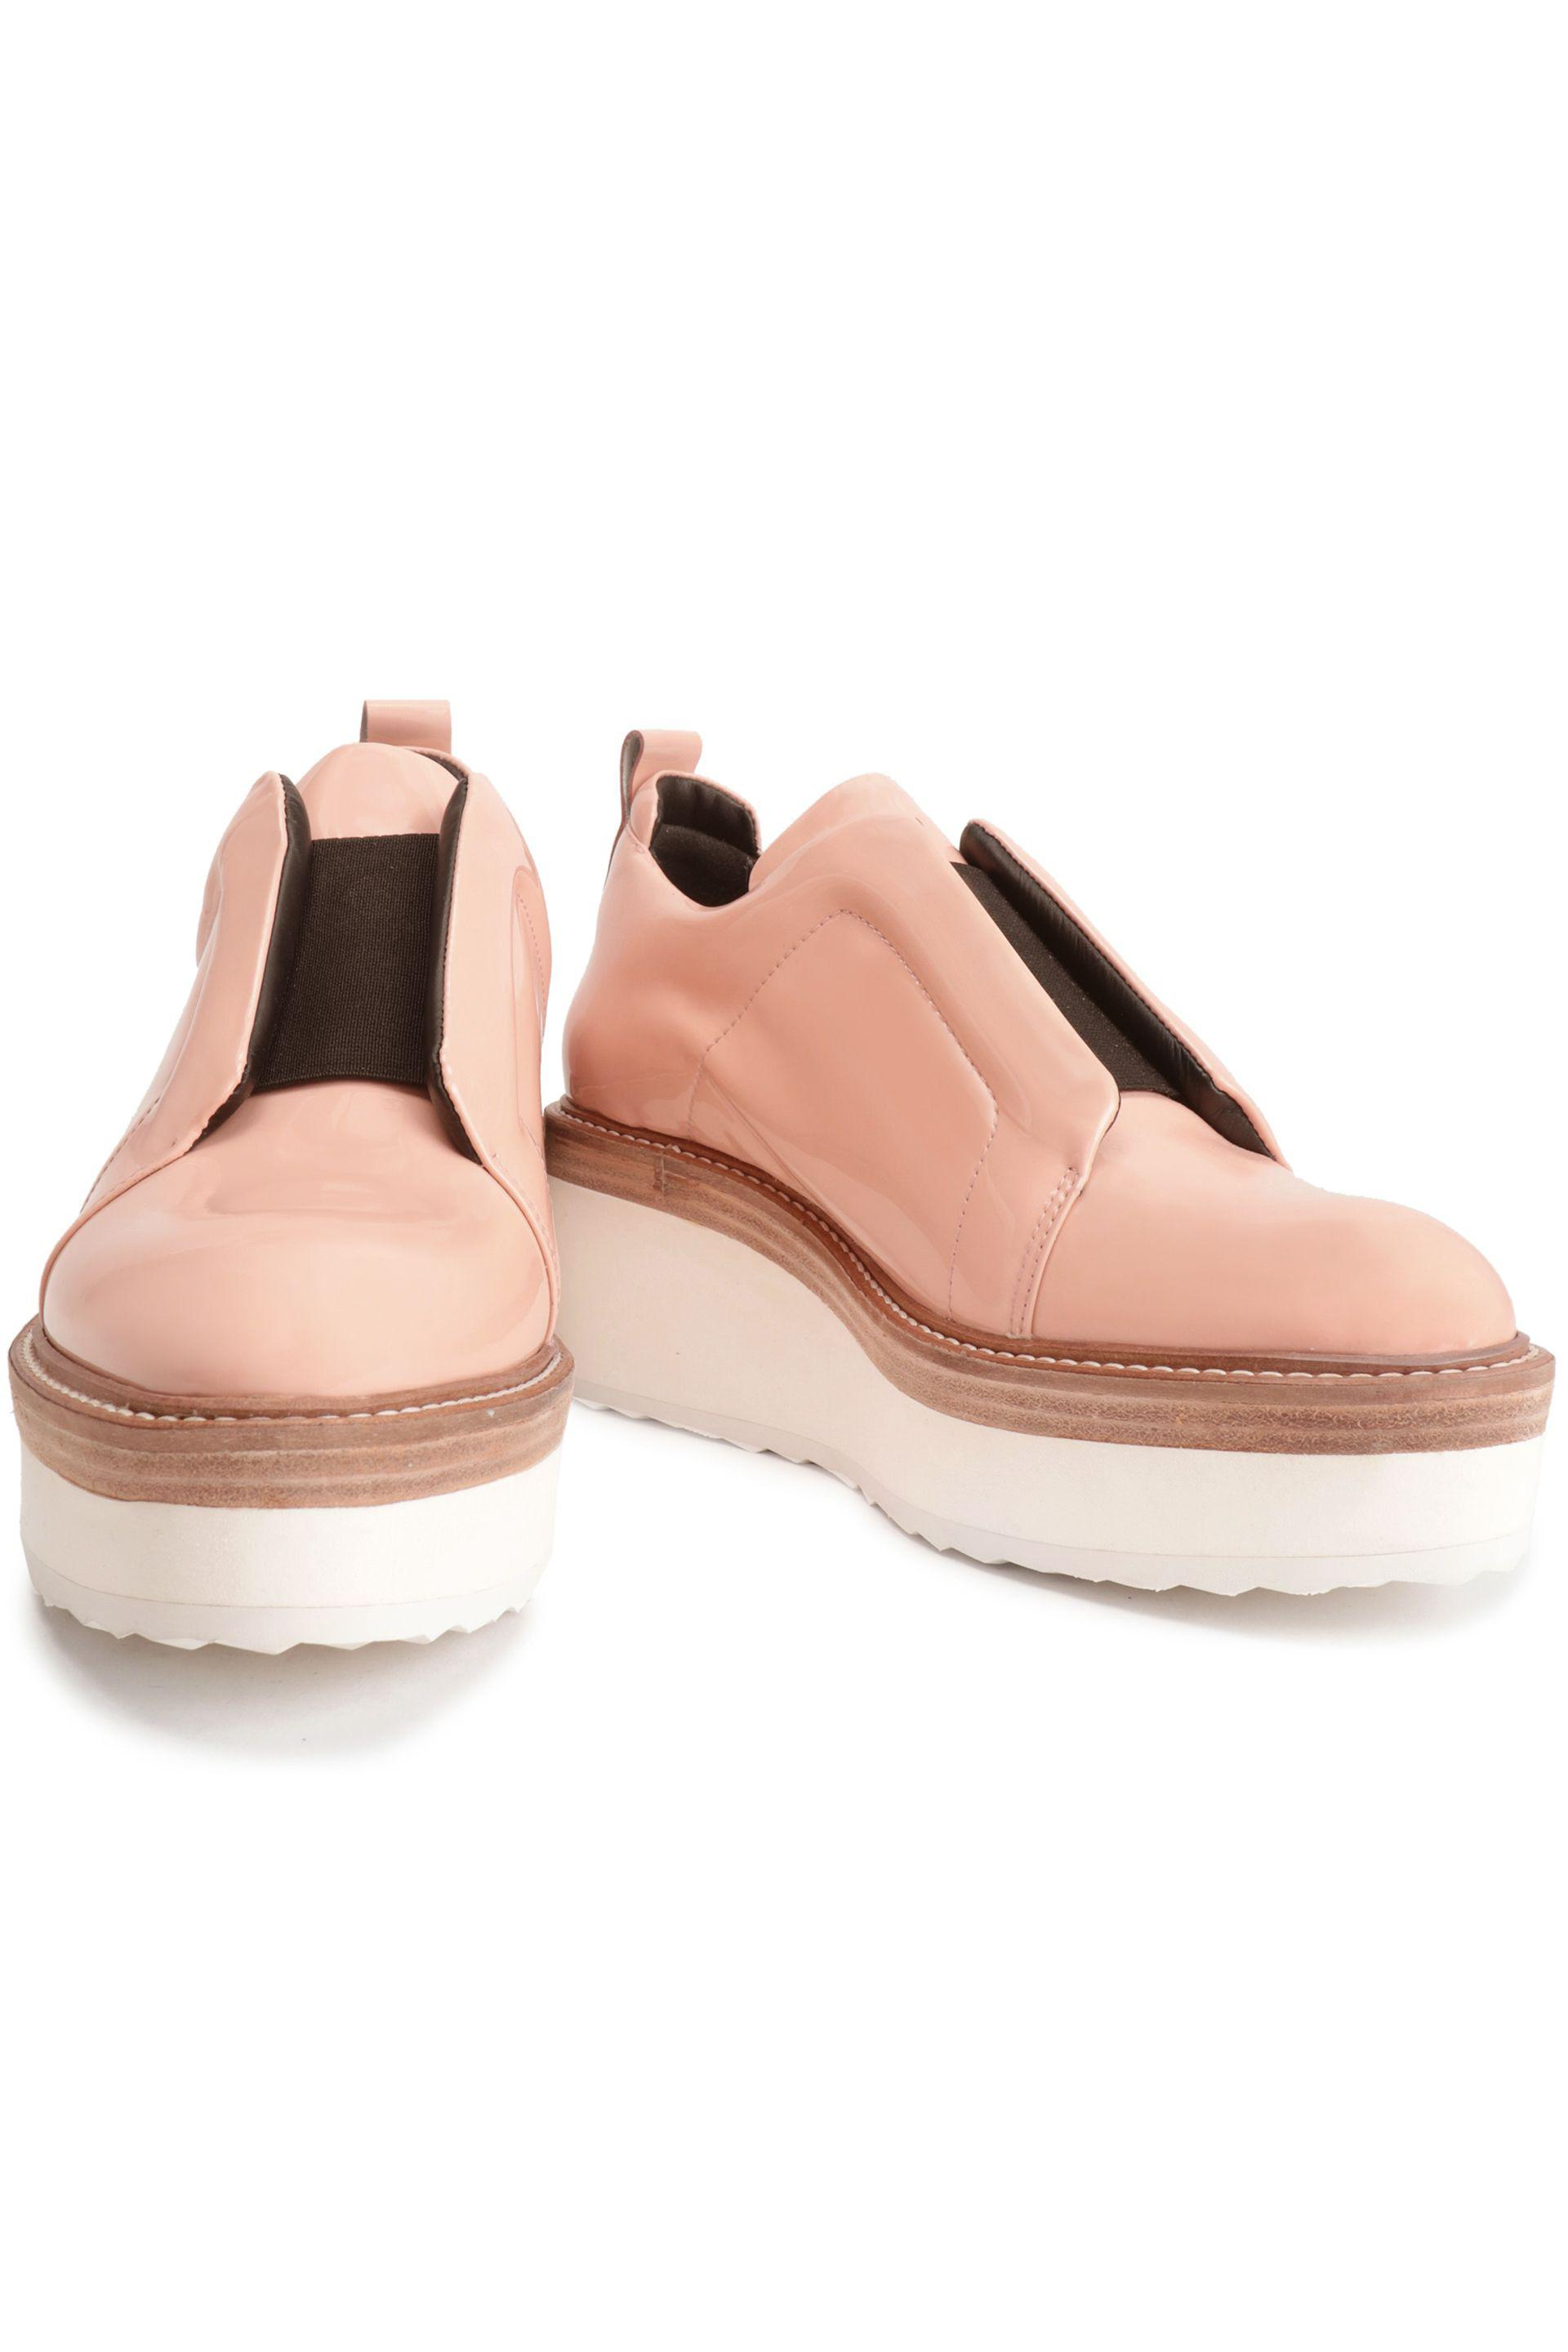 Pierre Hardy Patent Leather Platform Sneakers in Pink